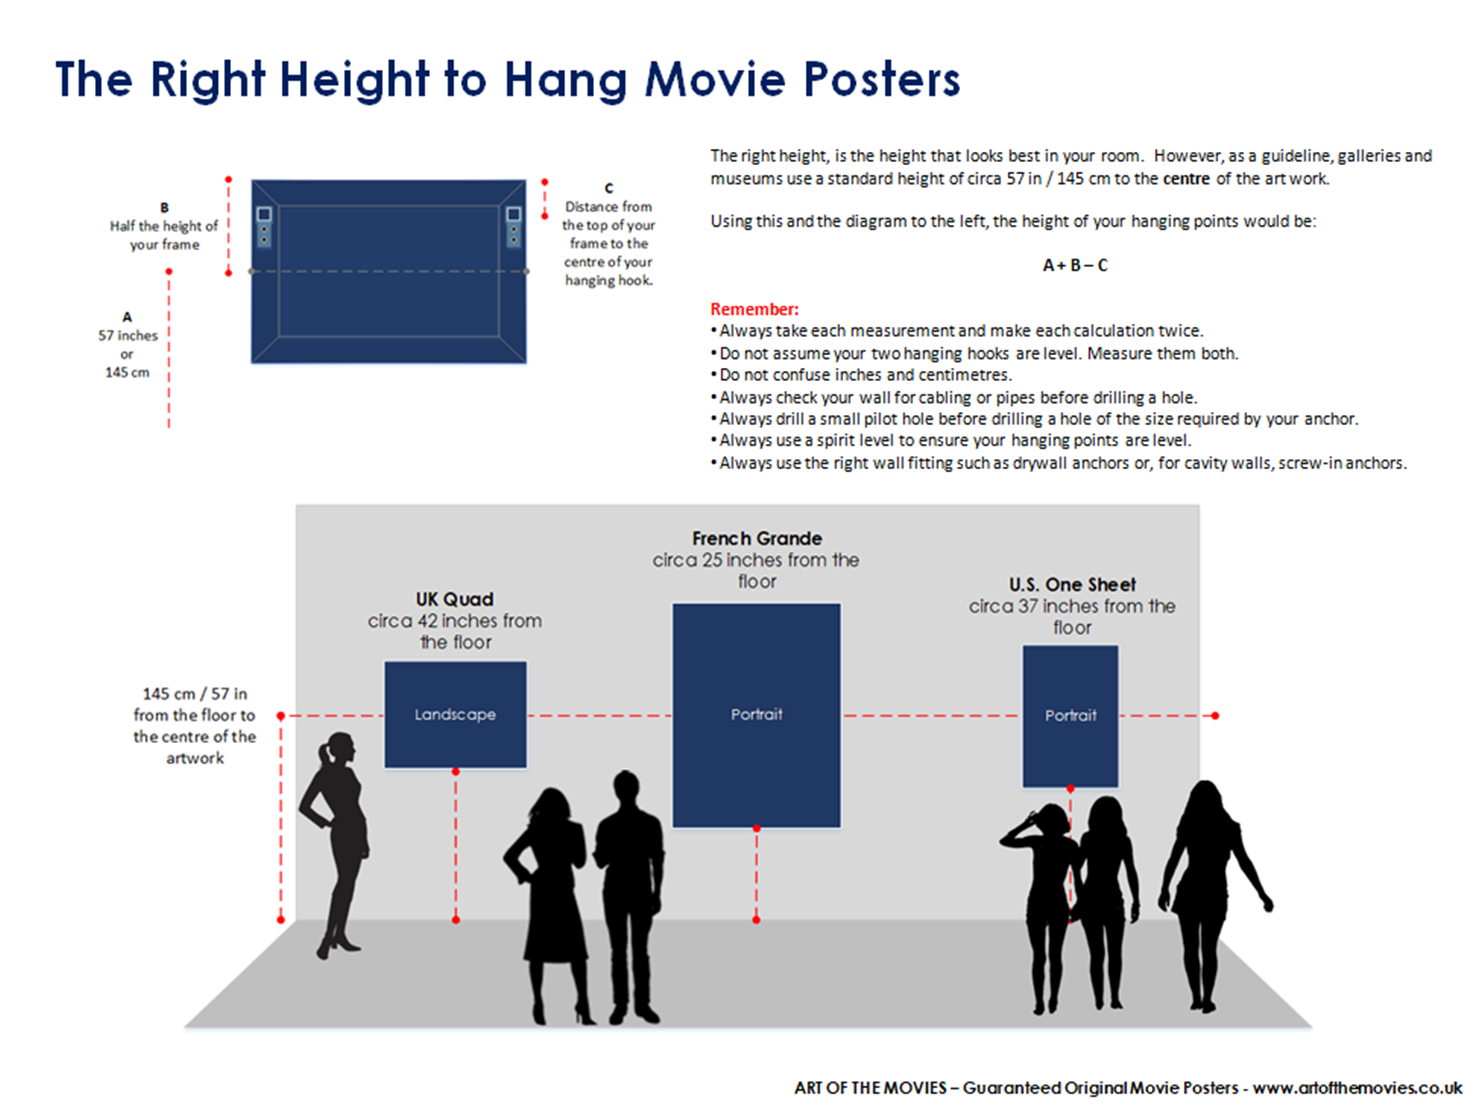 An Infographic showing the right height to hang art, including movie posters